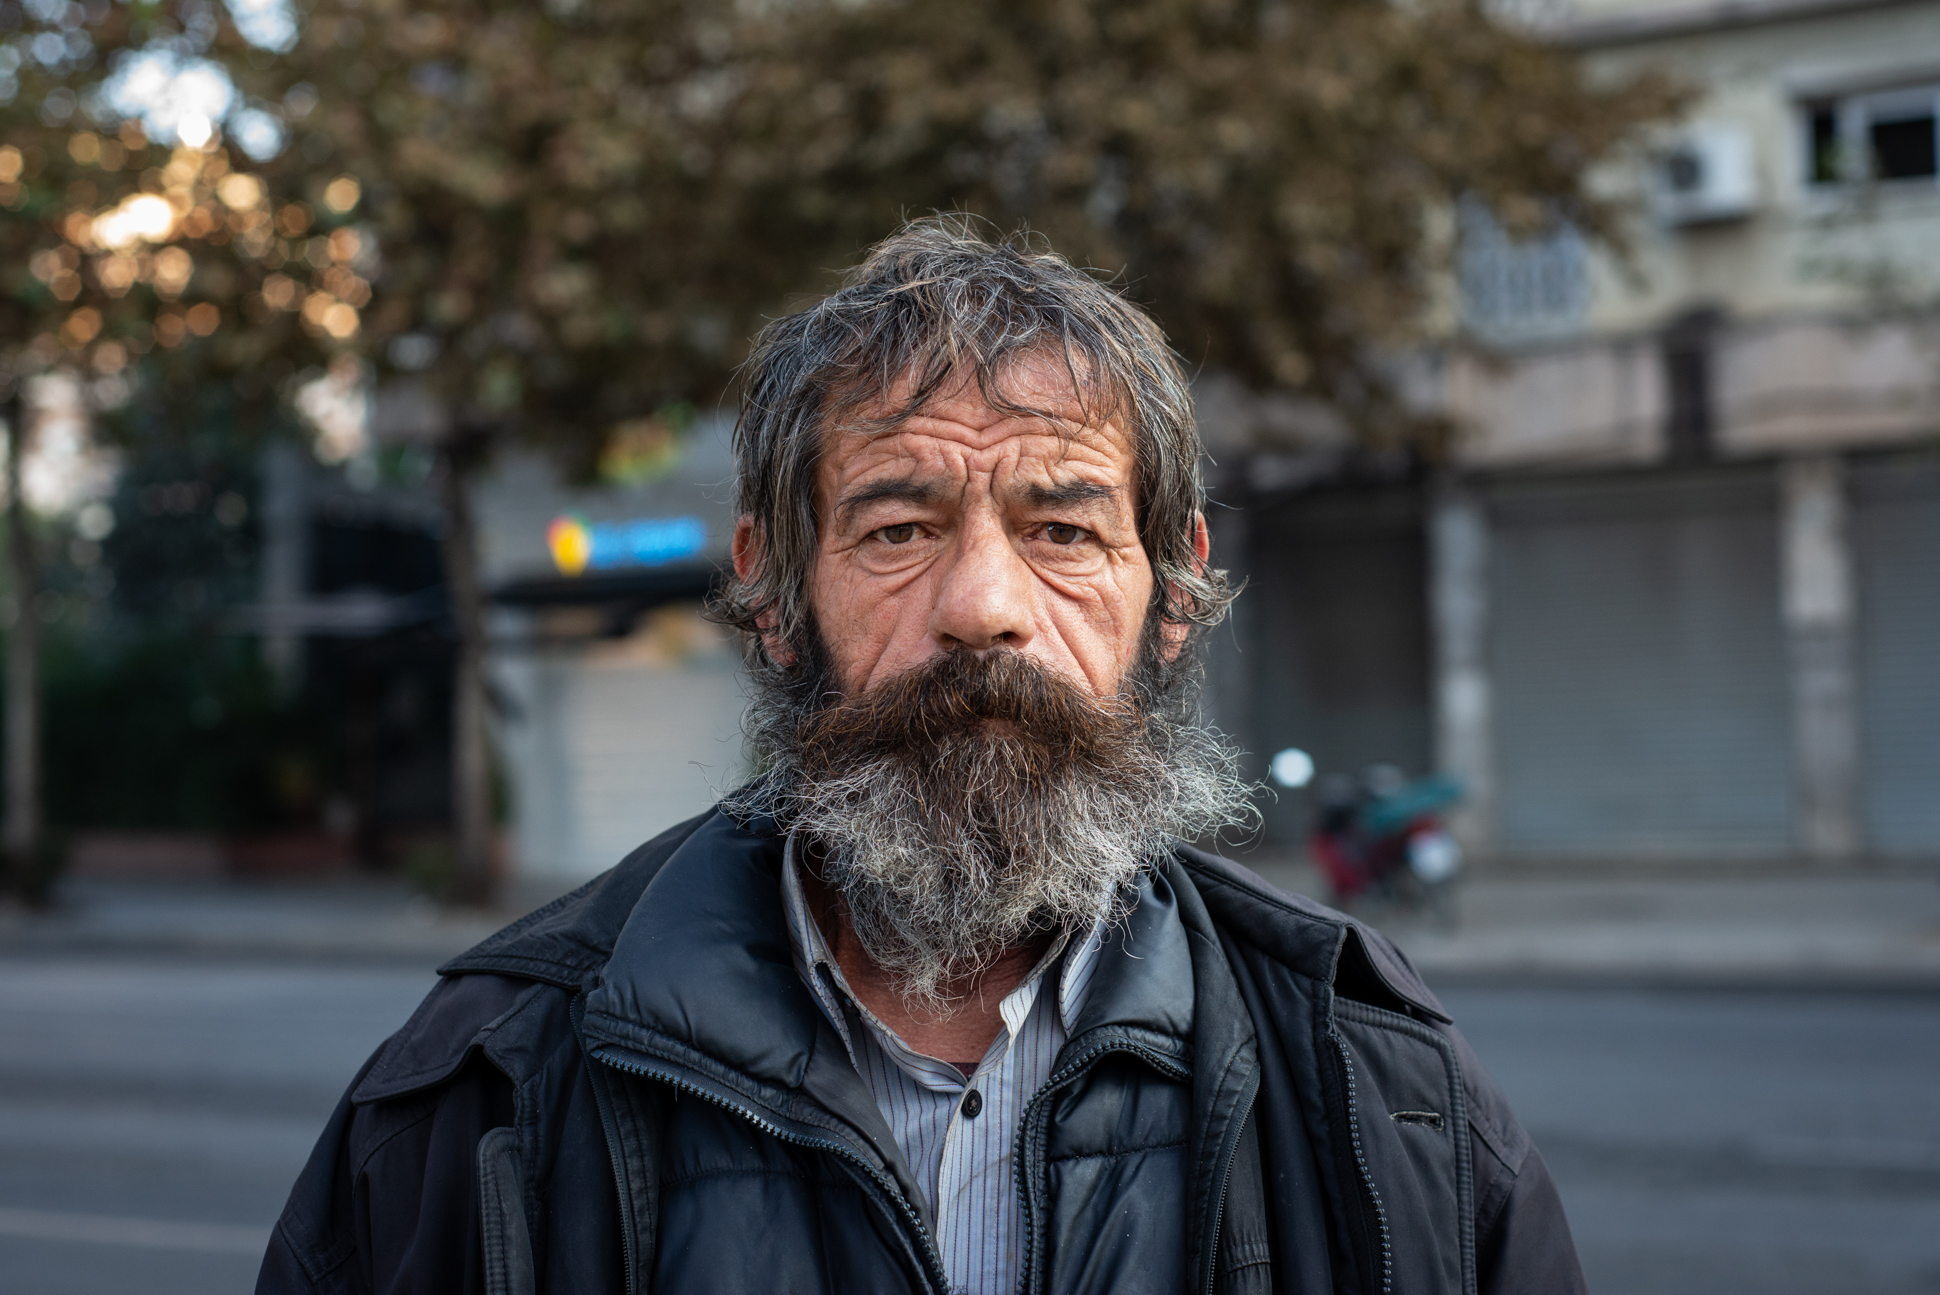 Man of the streets. Portrait of a homeless with a gray long beard. Ellis Photography.